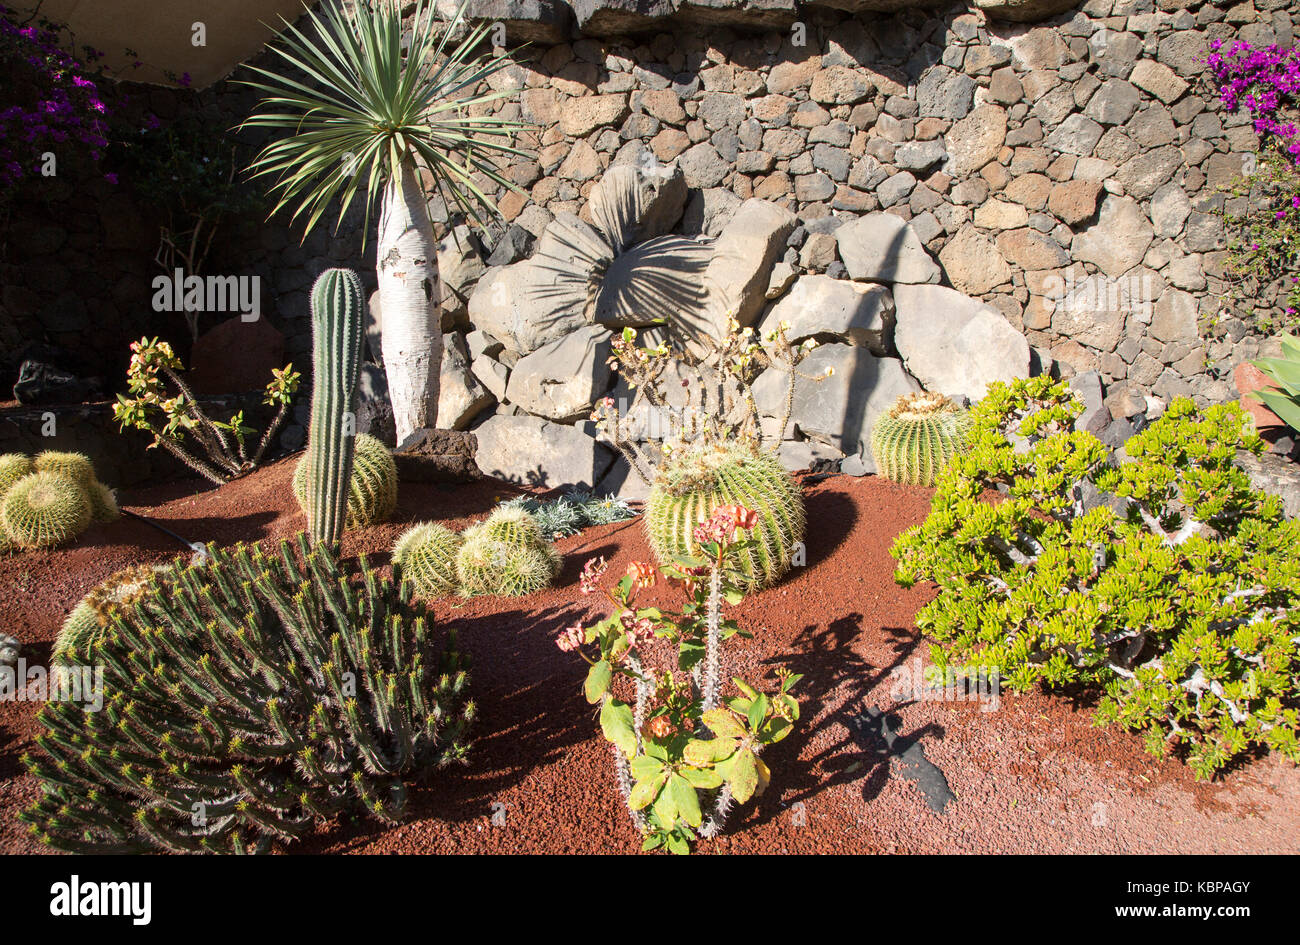 Small Cacti Garden With Different Varieties Of Cactus Lanzarote Canary  Islands Spain